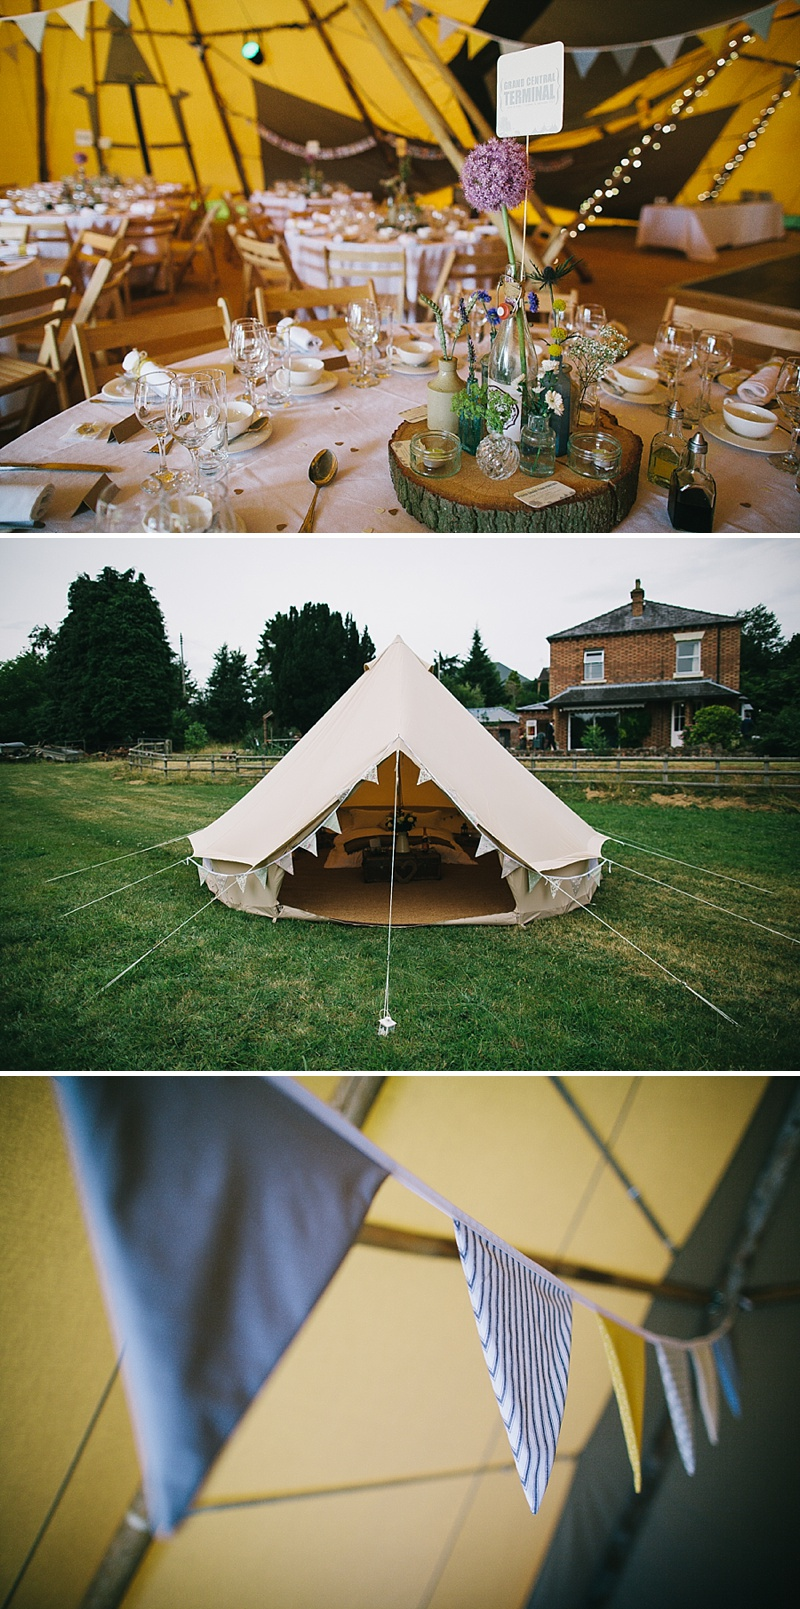 Rustic Tipi Wedding With Yellow Details In Shropshire Bride In Sienna By Sassi Holford Images By Chris Barber 0011 If Shes Beside Me.